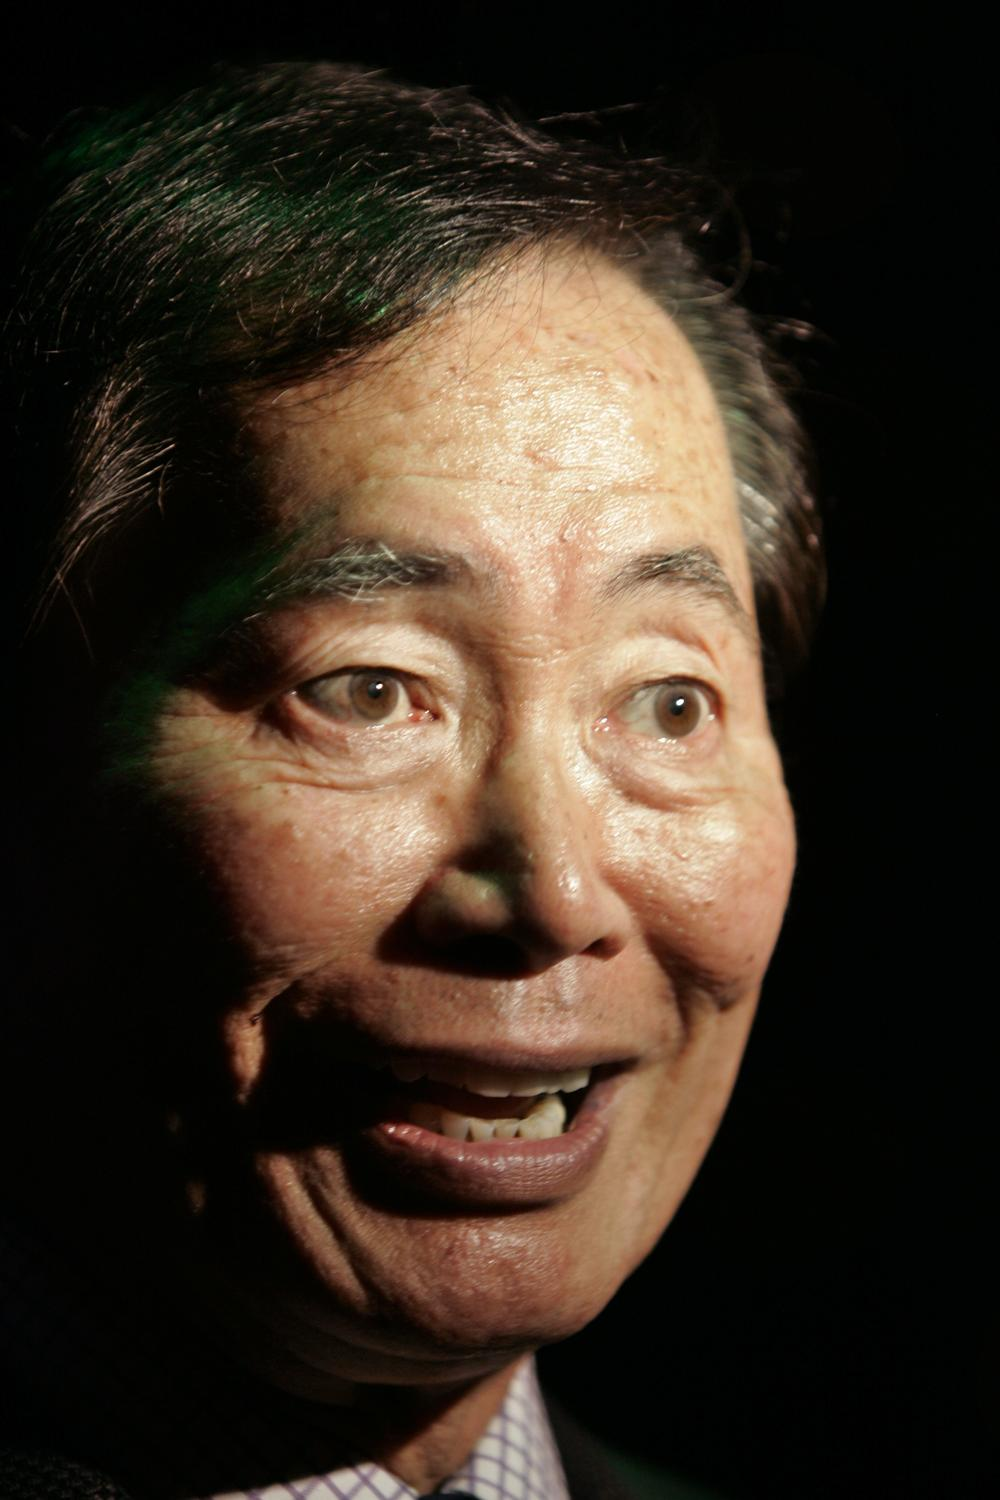 Actor George Takei, who played the role of helm officer Sulu in the original television series, Star Trek. (AP)